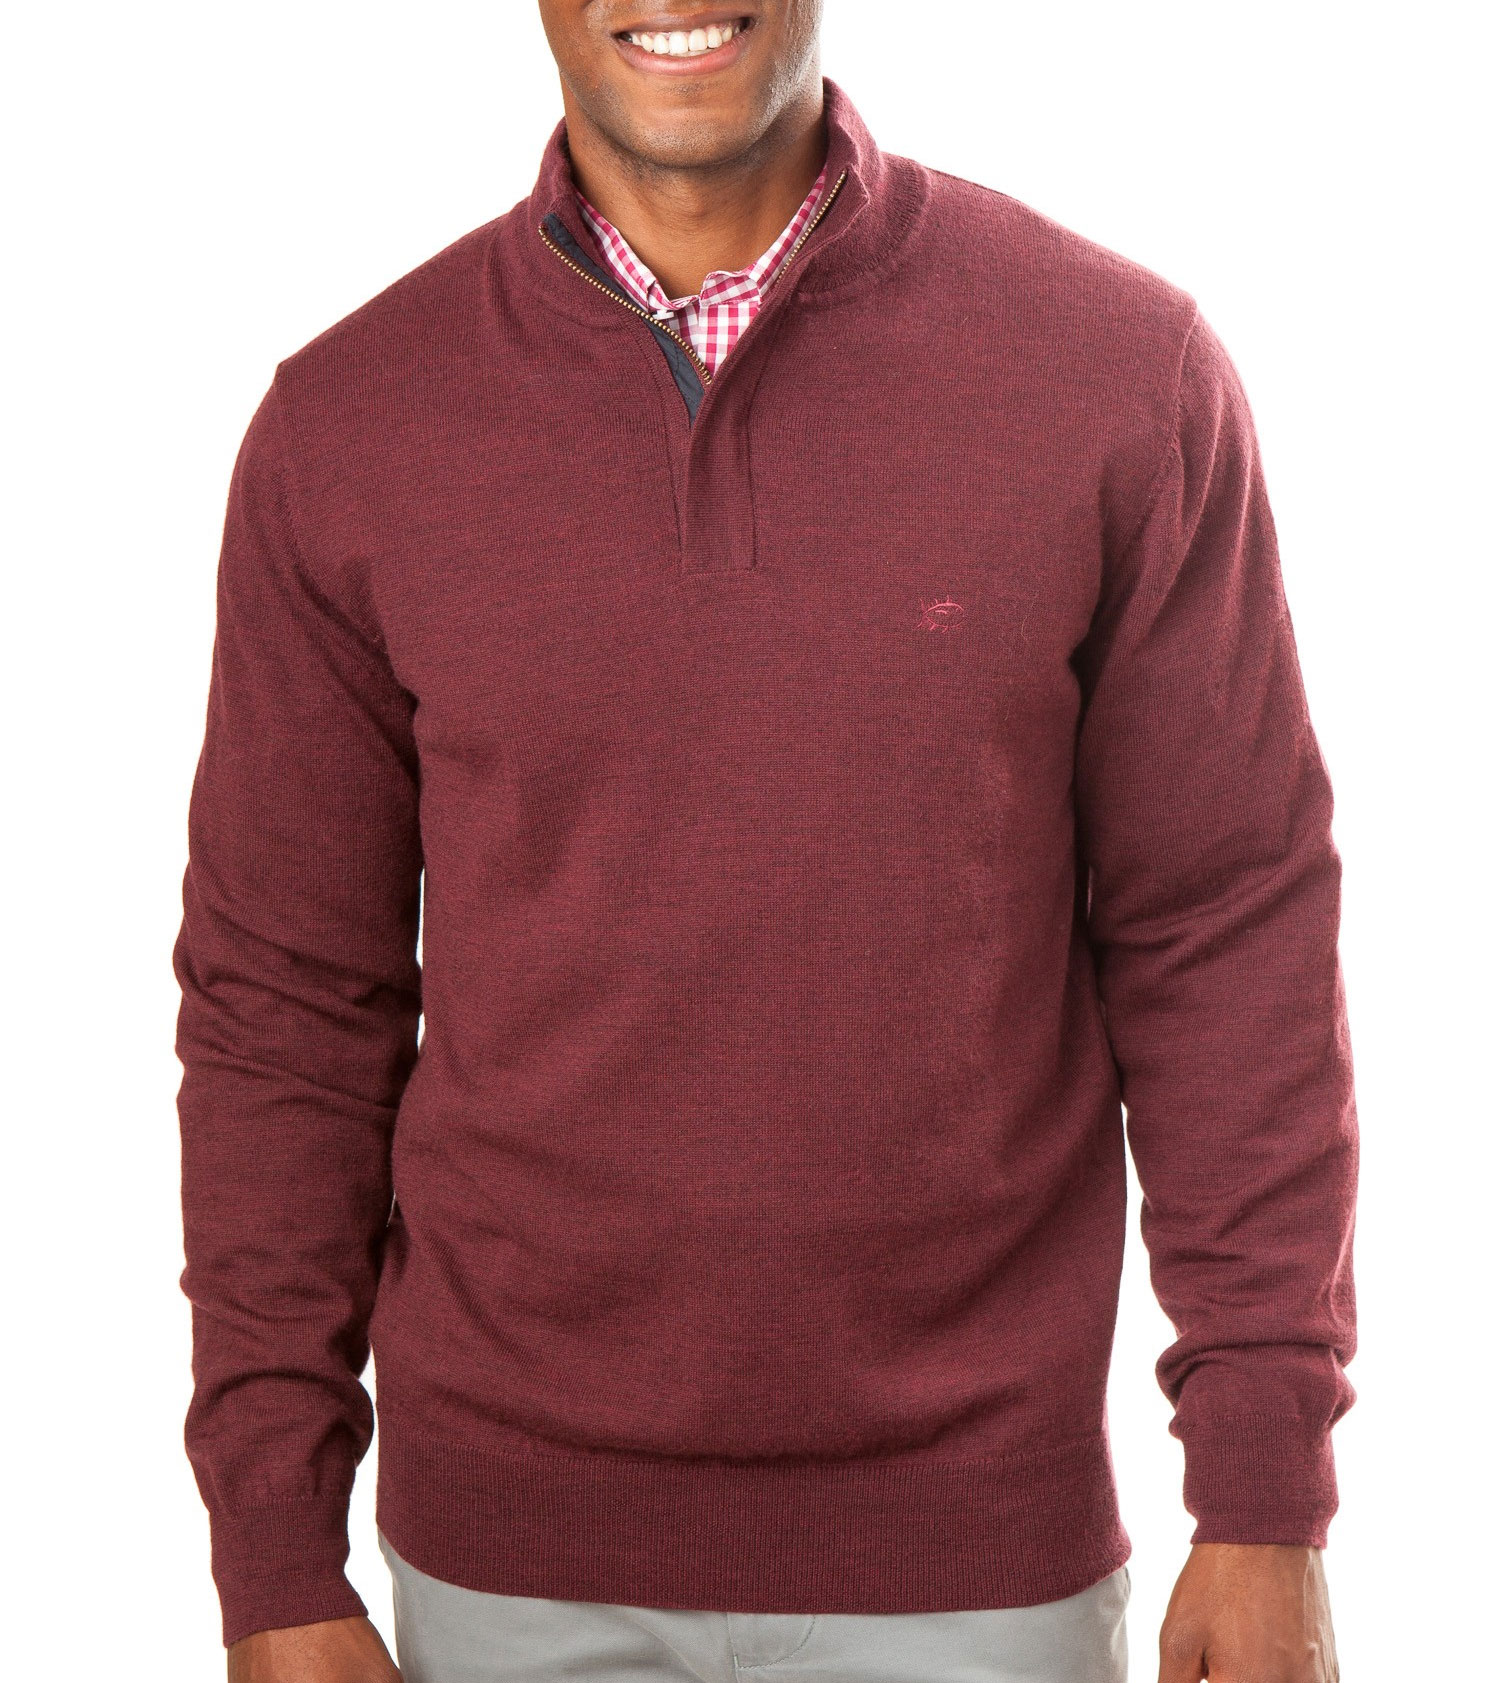 Southern Tide Mens Skipper 1/4 Zip Sweater